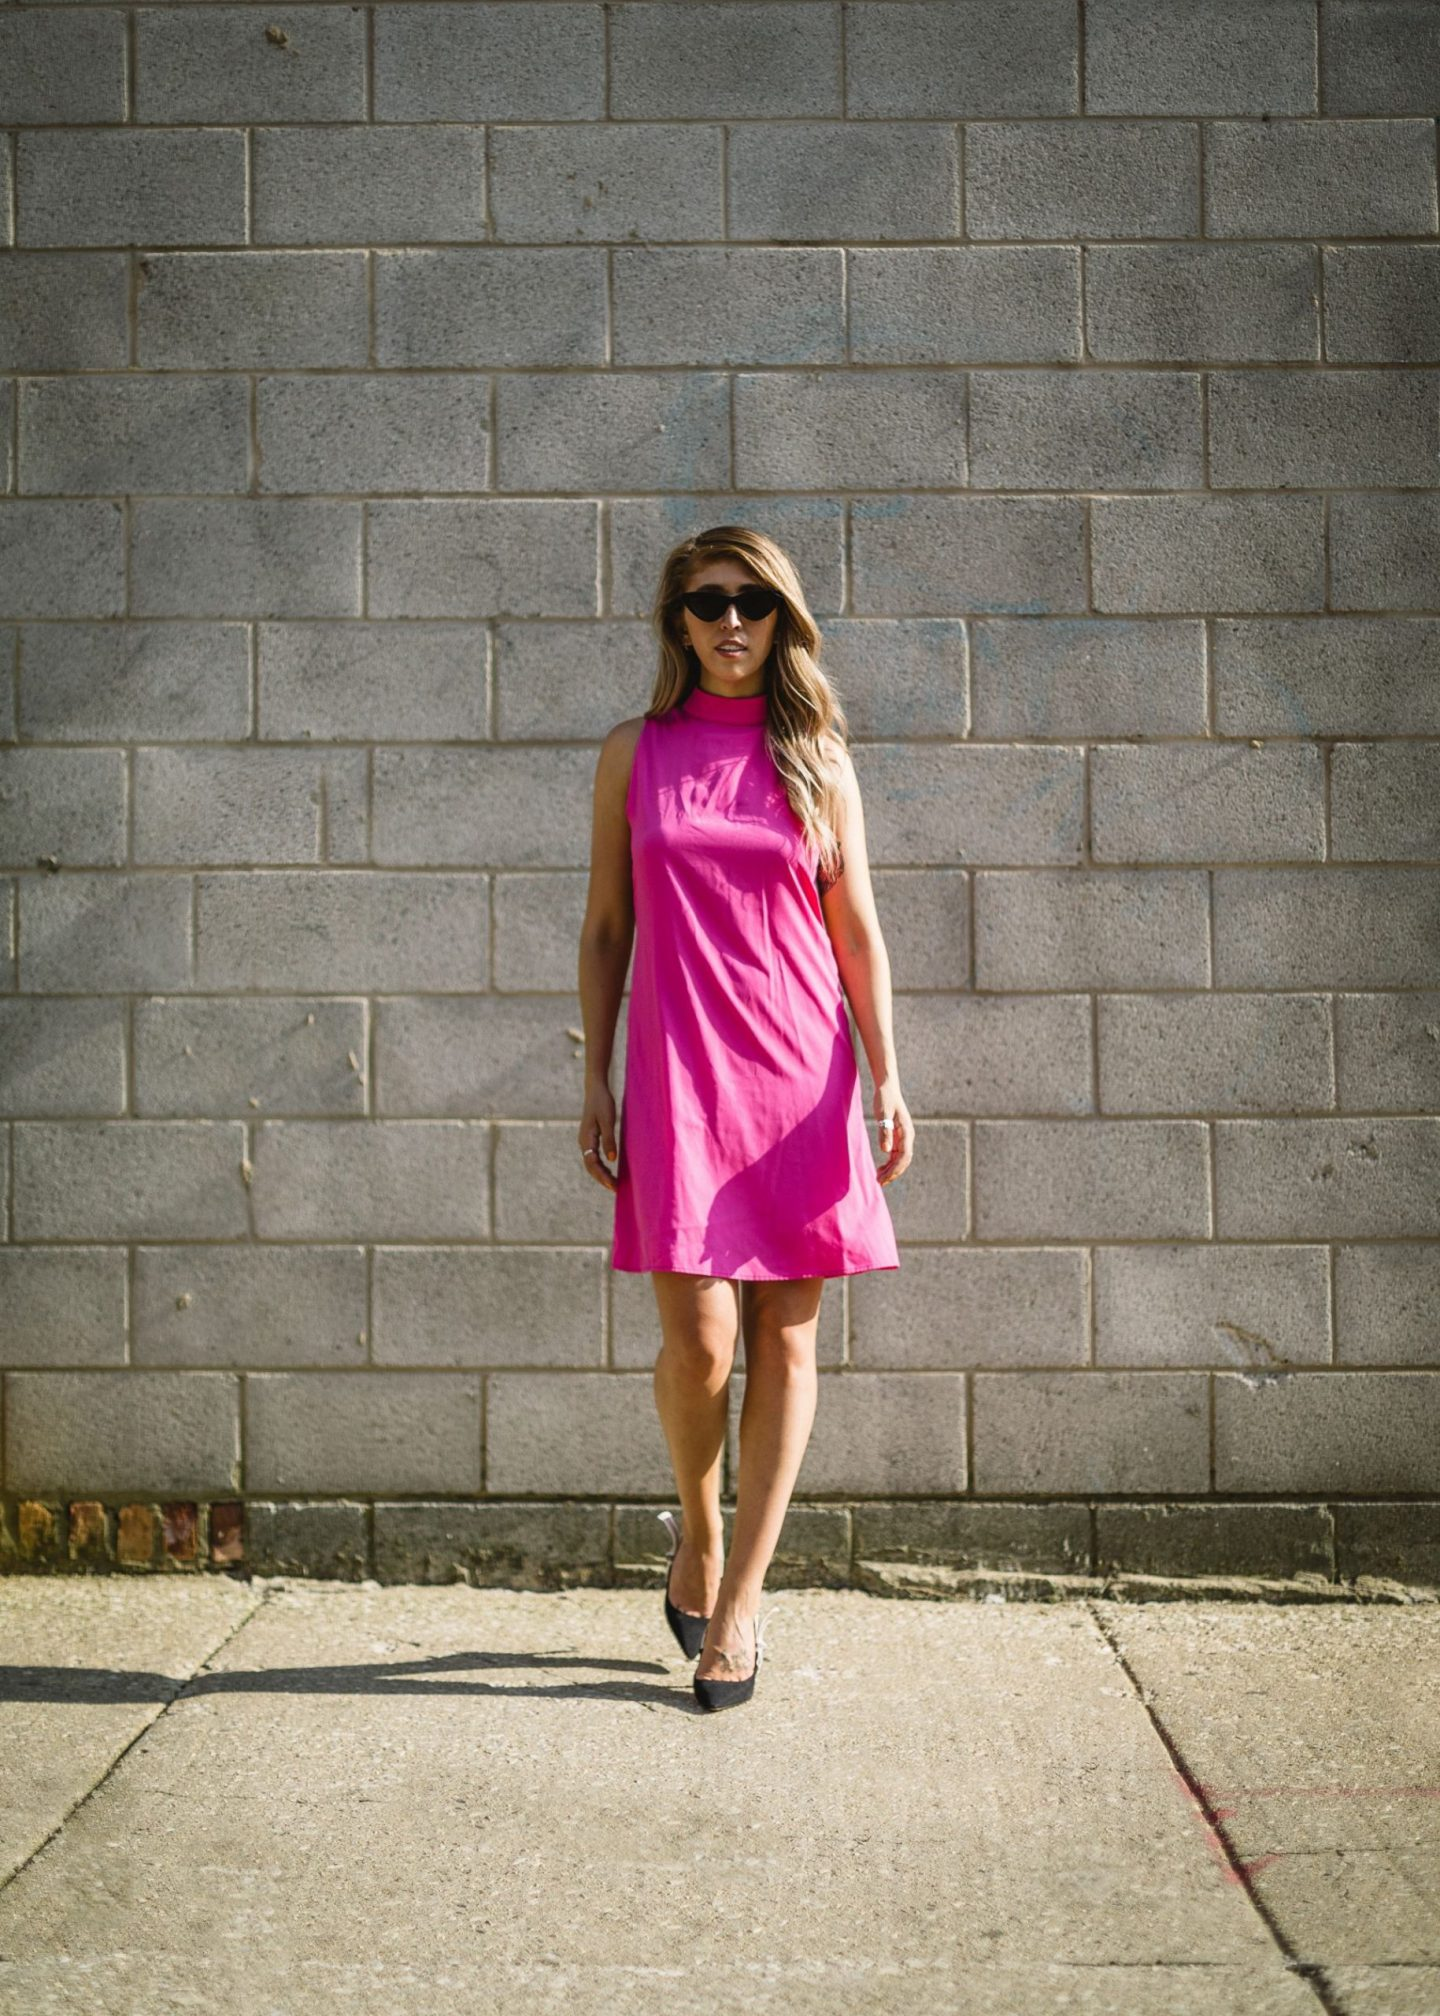 walking forward in a pink dress Jessa